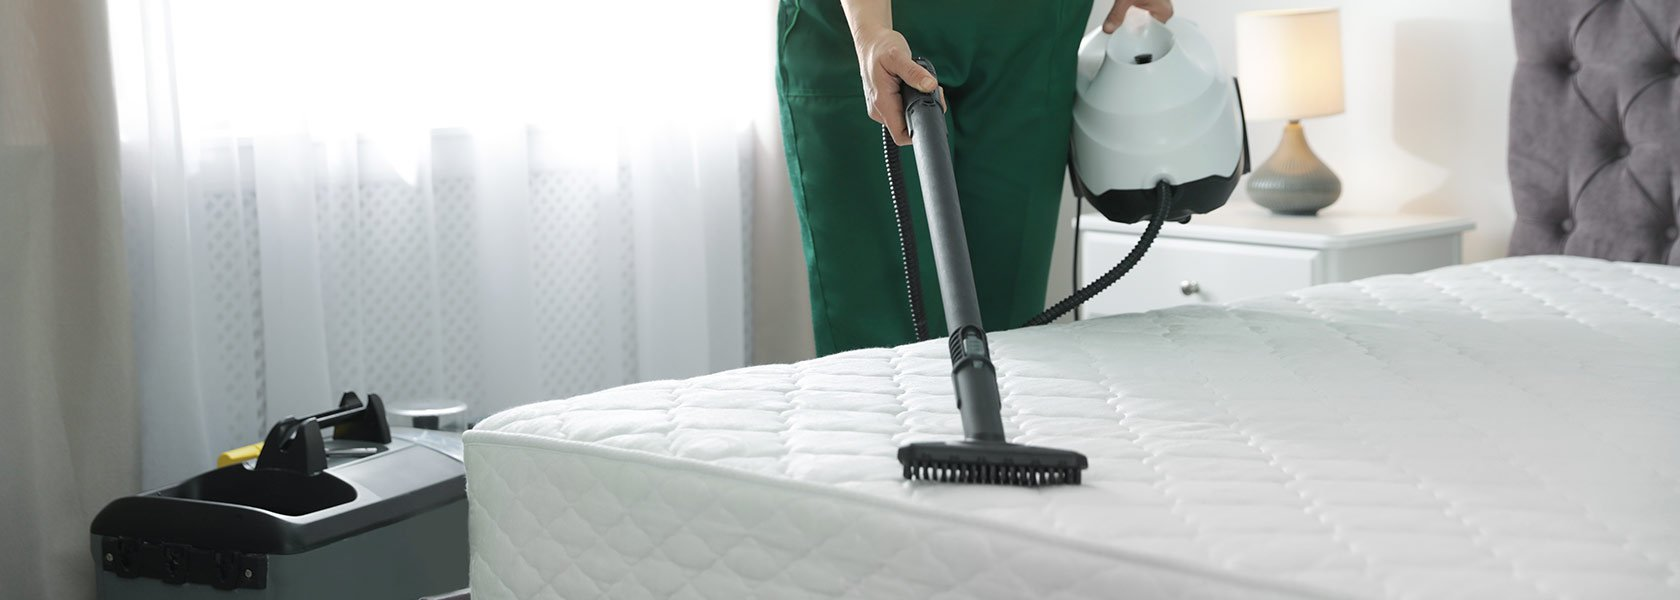 Mattress Cleaning Services - Professional mattress cleaning, washing, vaccuming & steaming...